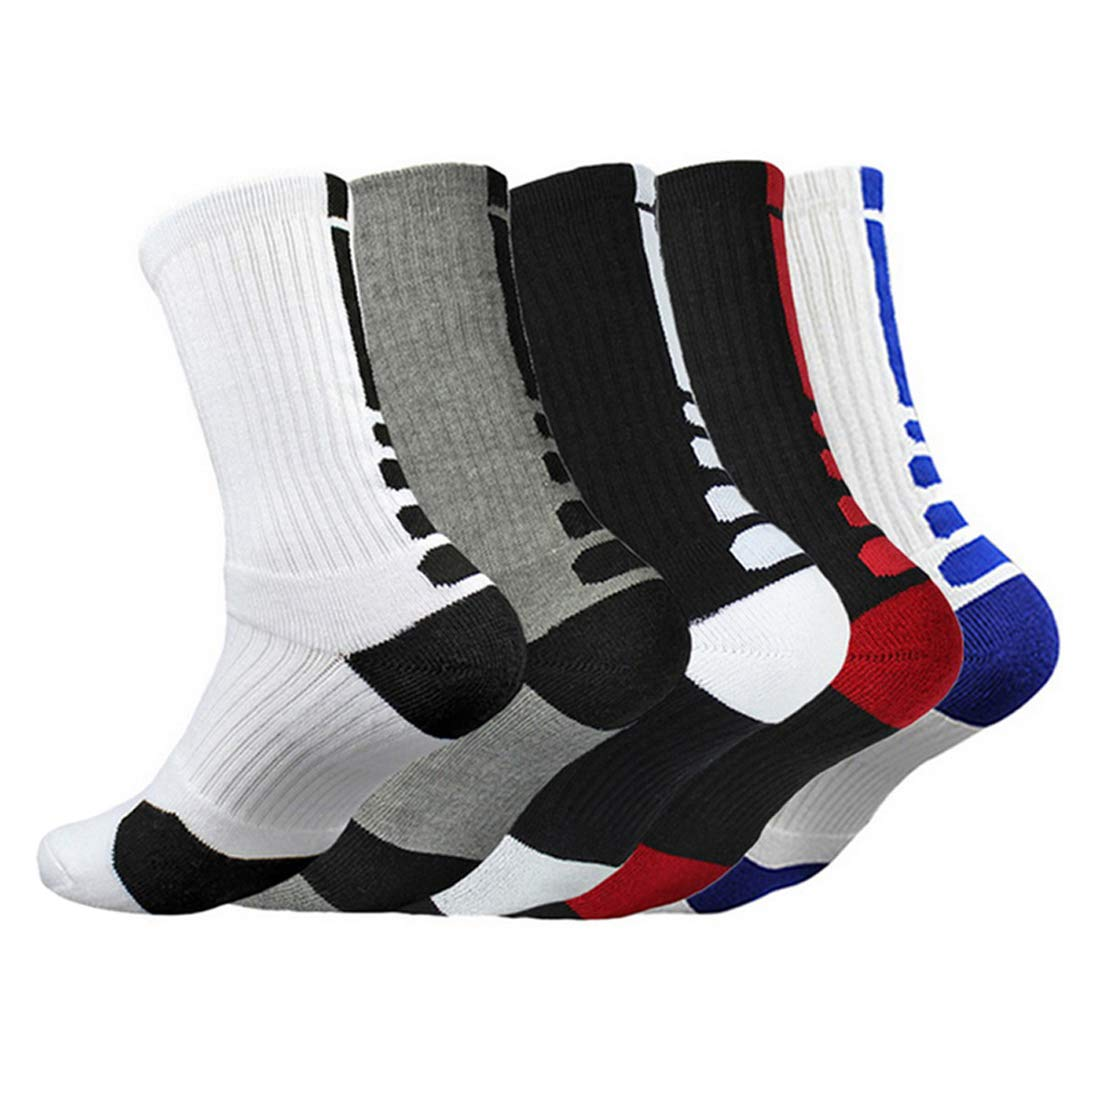 Mens Dri-fit Cushioned Basketball Socks Athletic Crew Socks Long Sports Outdoor Socks Compression Socks